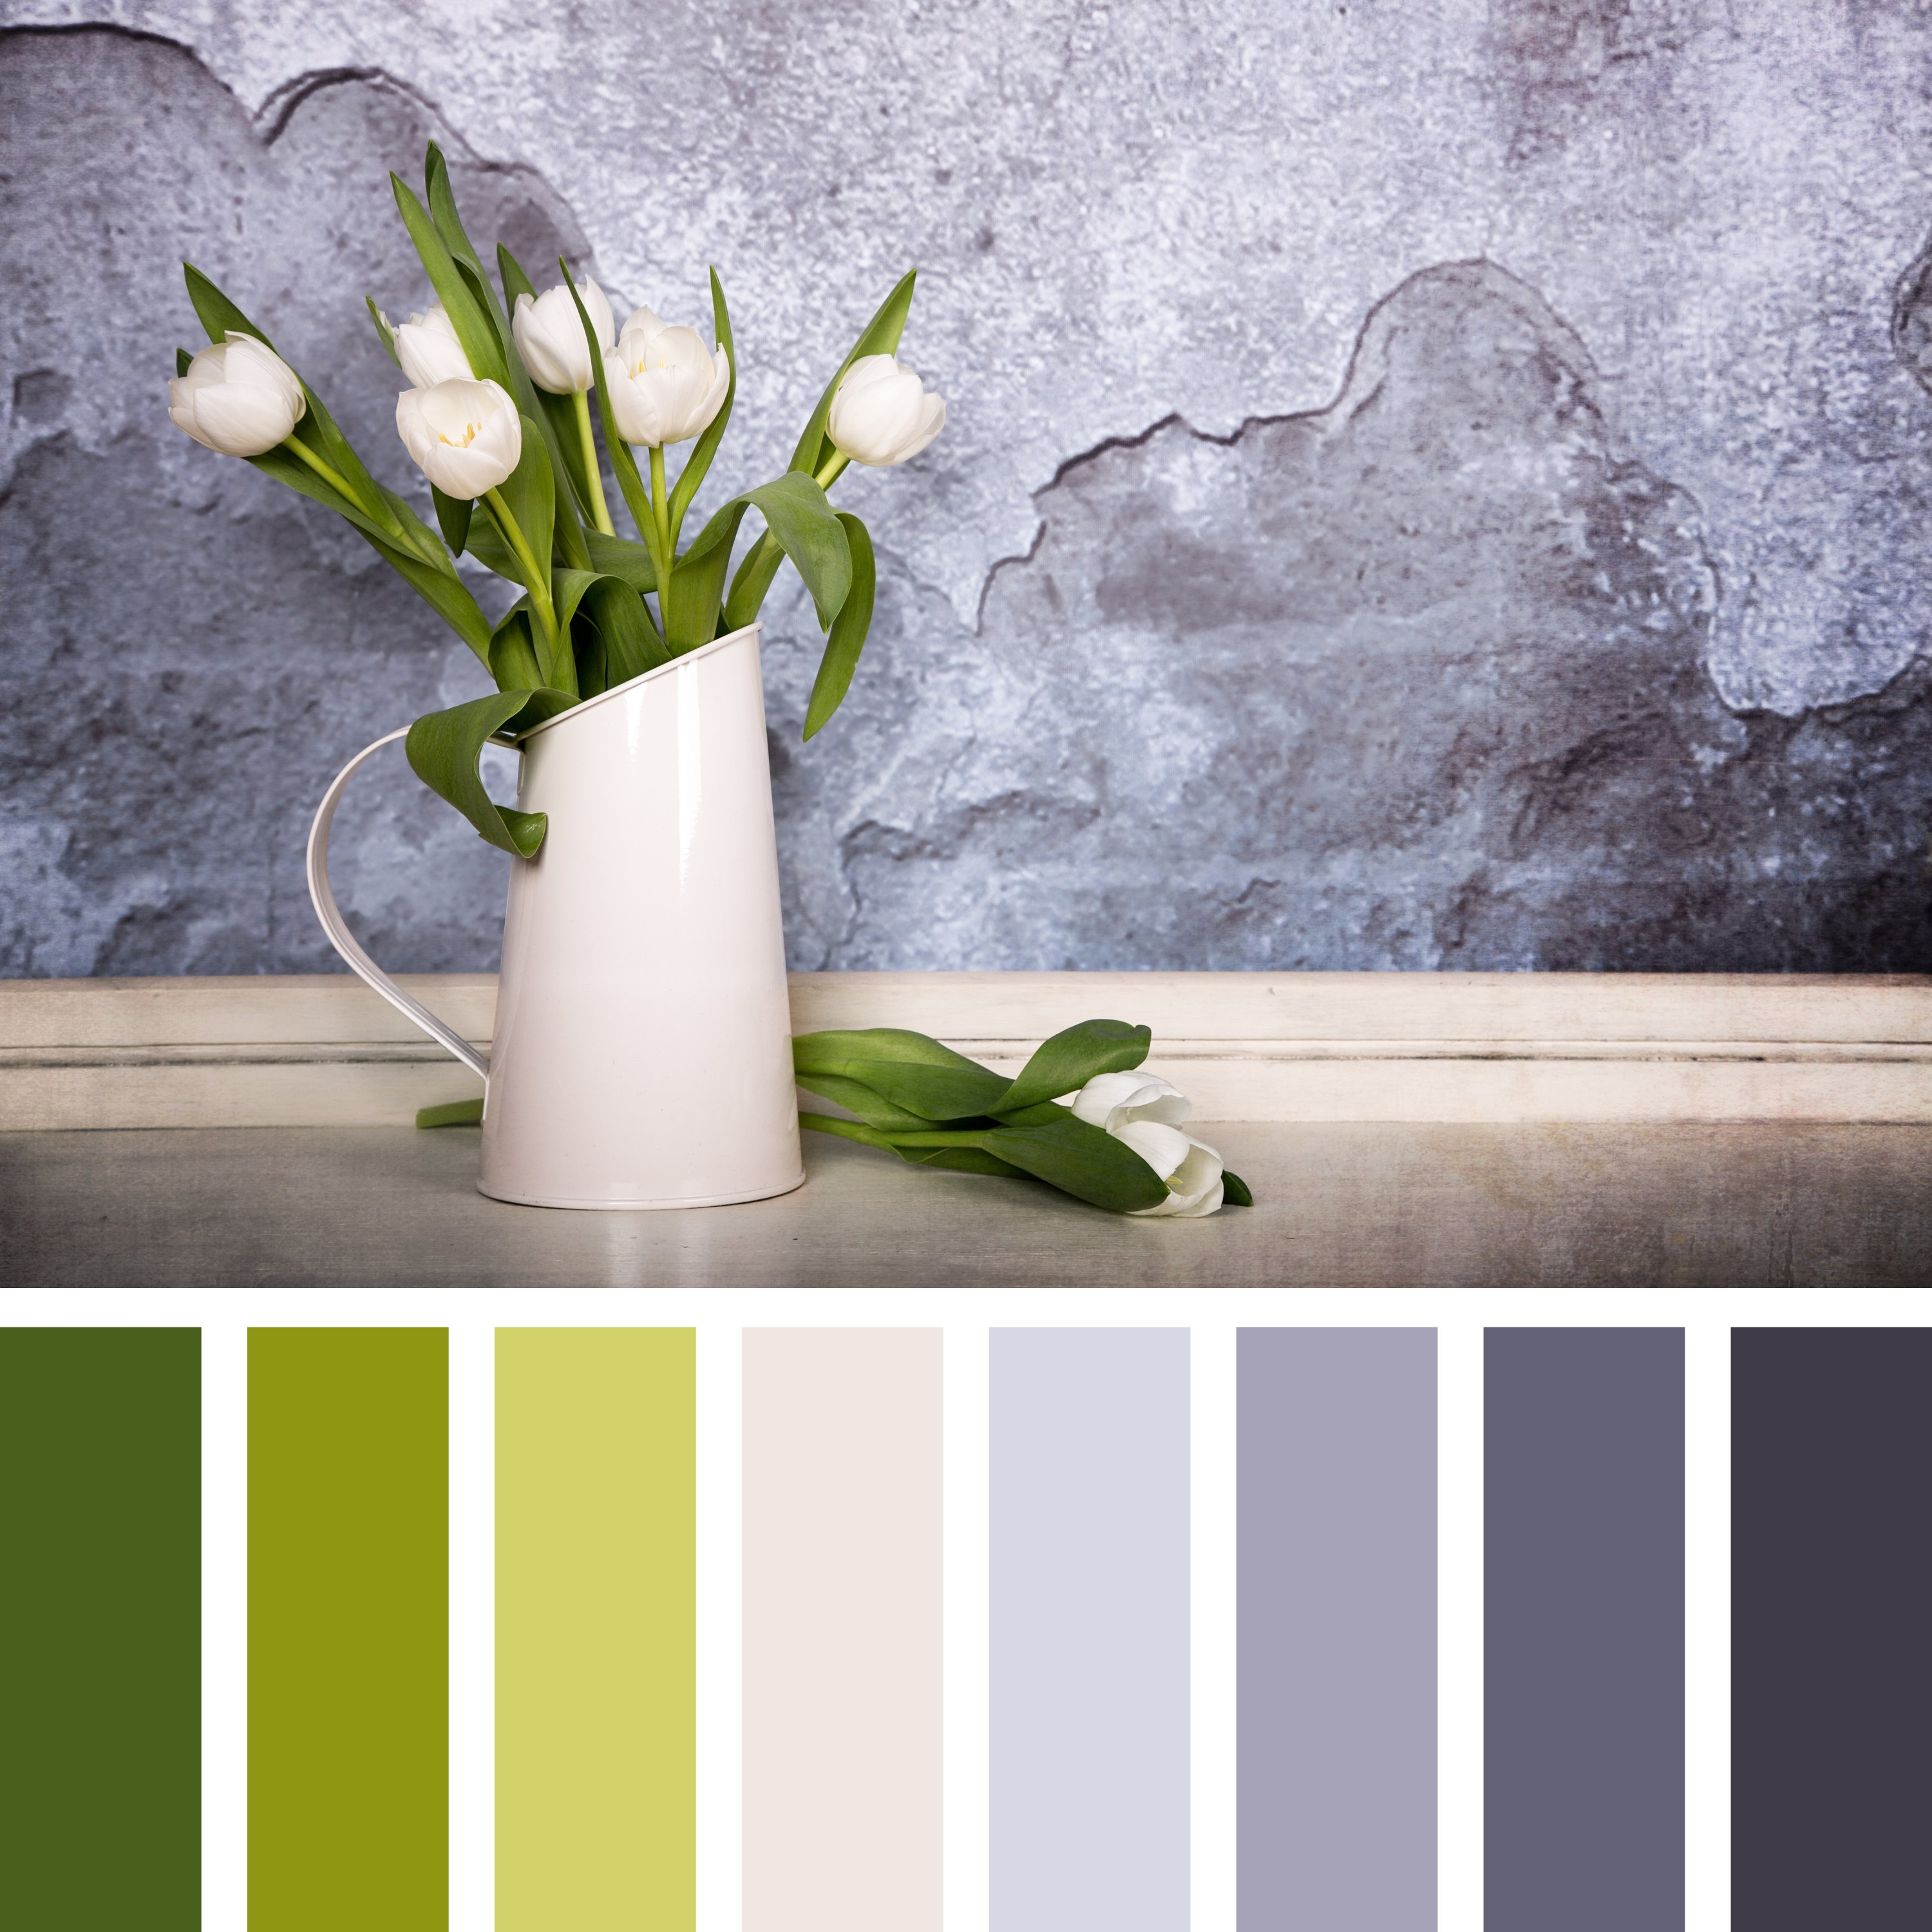 A tin jug filled with white tulips and positioned in front of a textured plaster wall is seen with a color palette of complementary color swatches. (Shutterstock Photo)